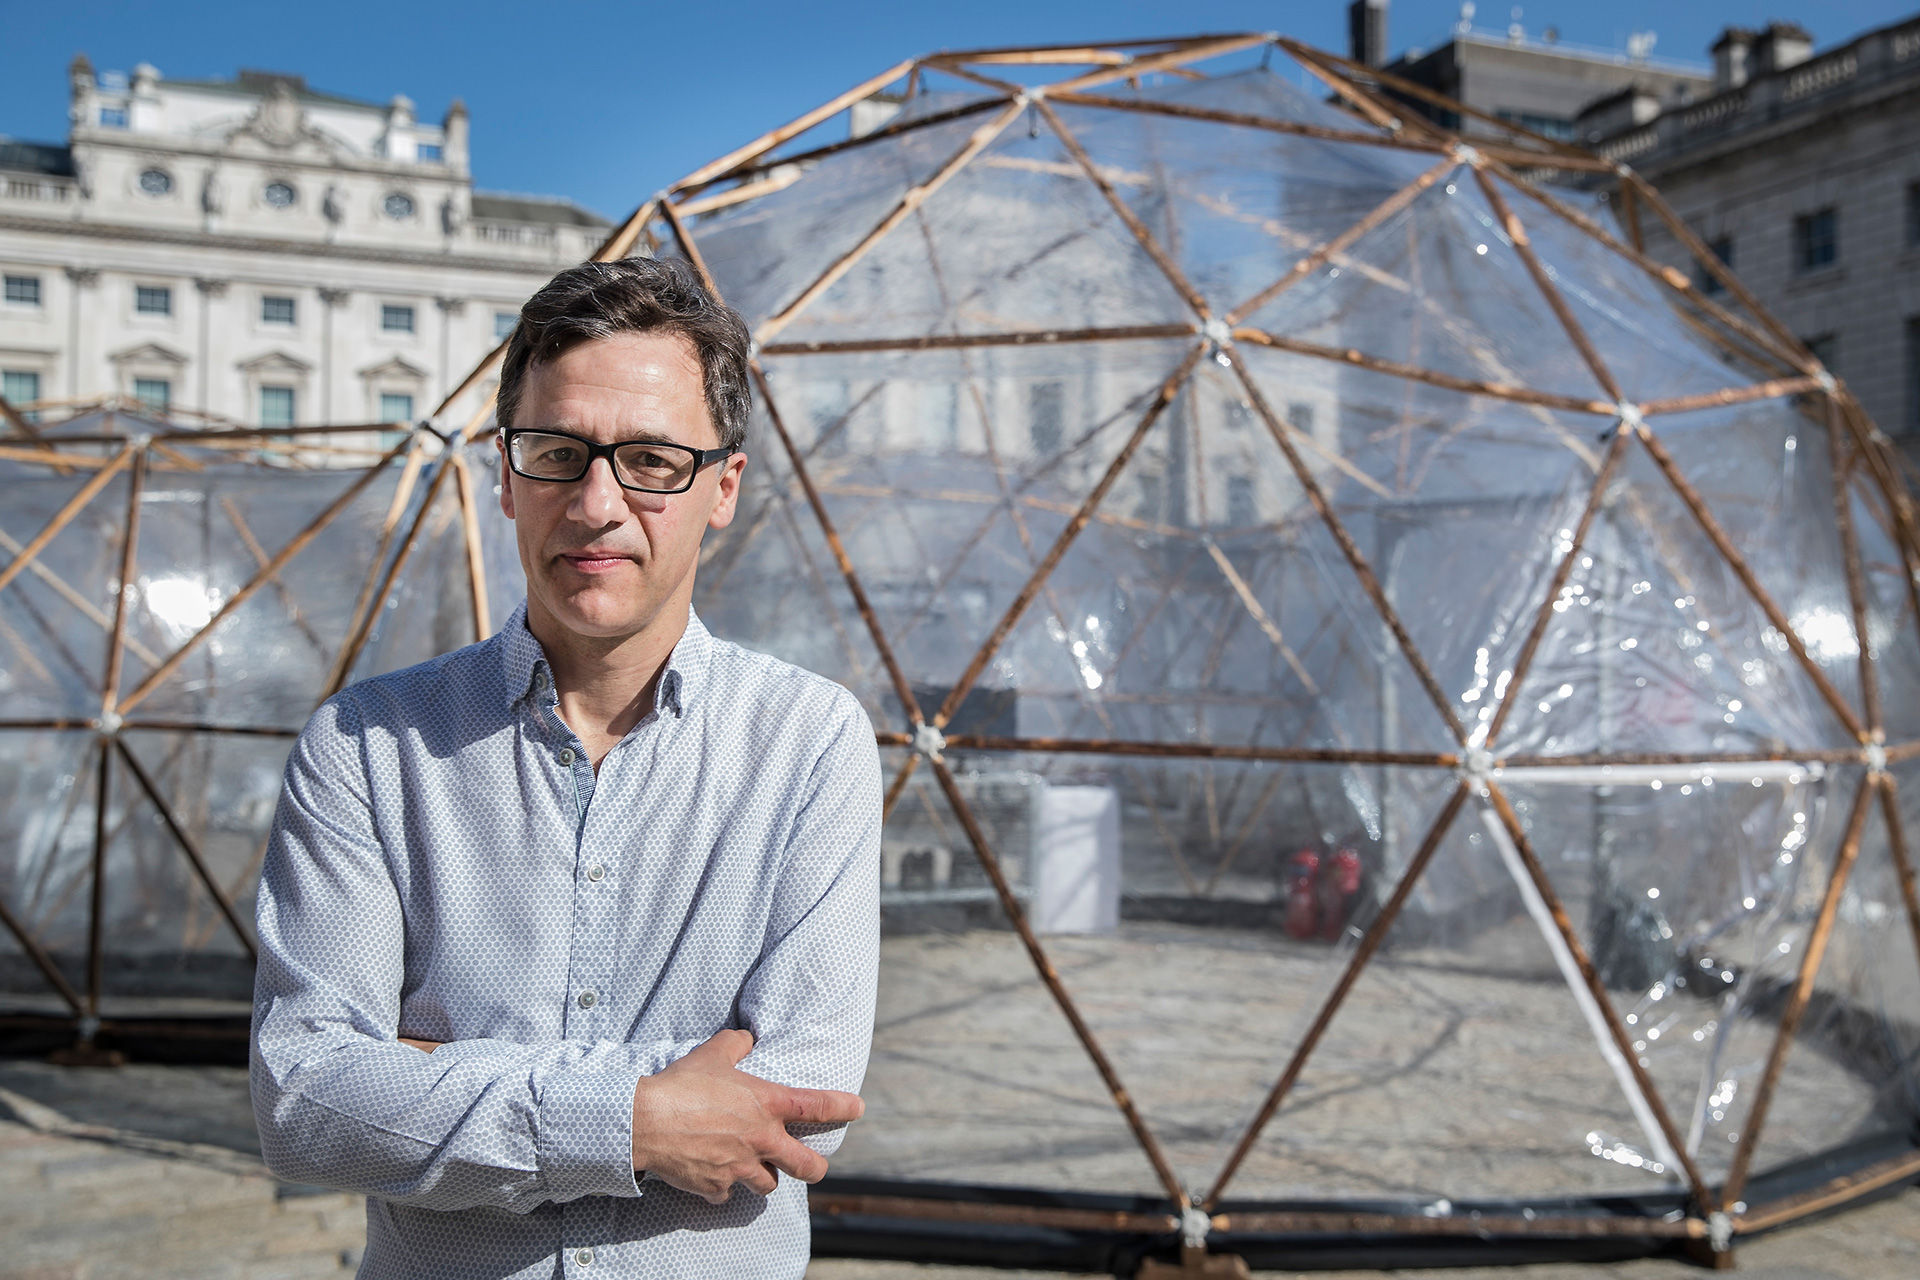 Artist Michael Pinsky with his installation Pollution Pods in the background | Michael Pinsky | STIRworld